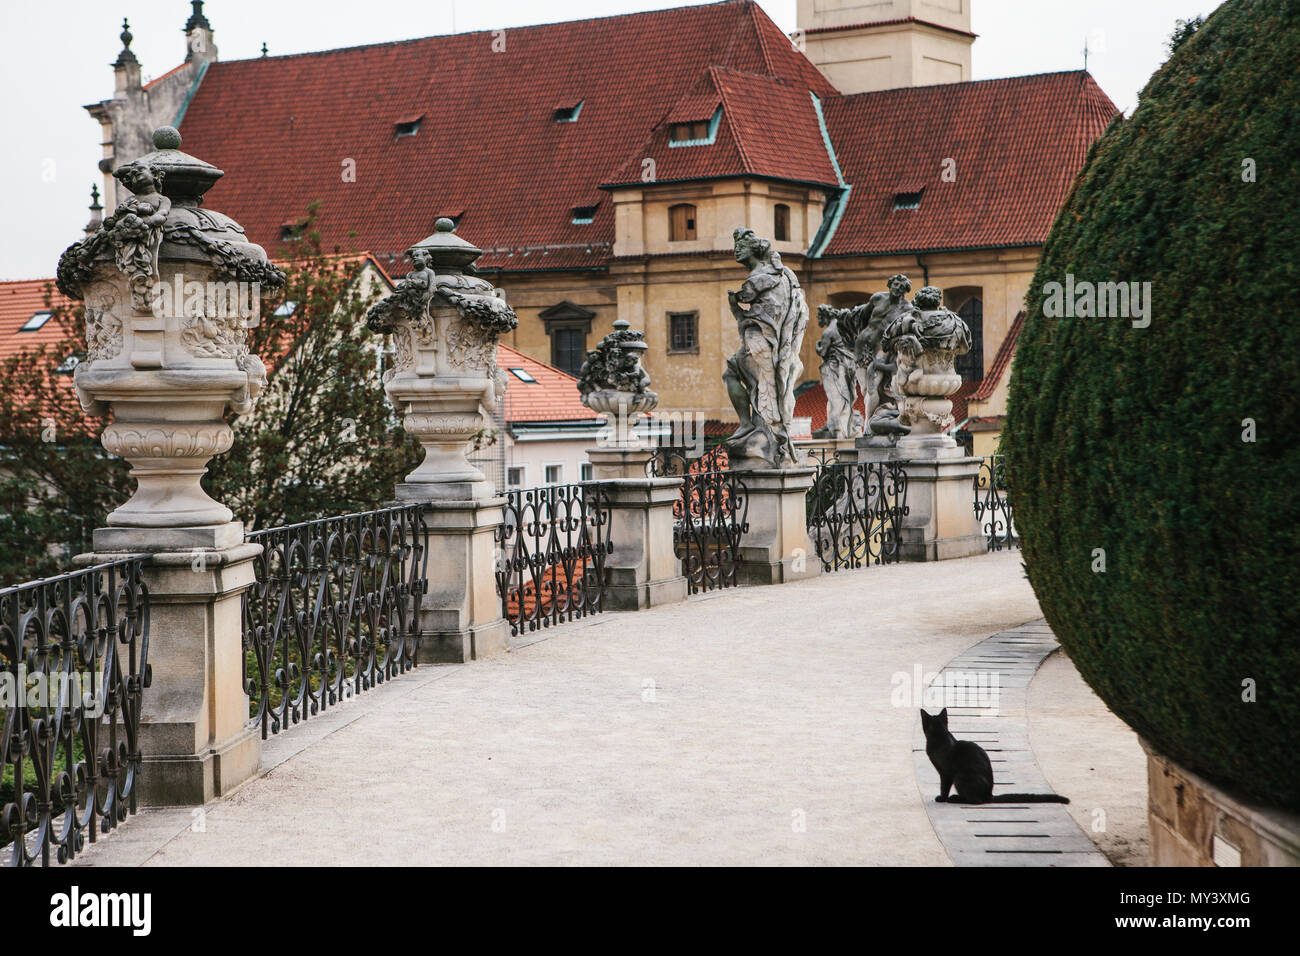 Prague, September 18, 2017: A black cat sits on the background of the medieval architecture of Prague in the Czech Republic - Stock Image